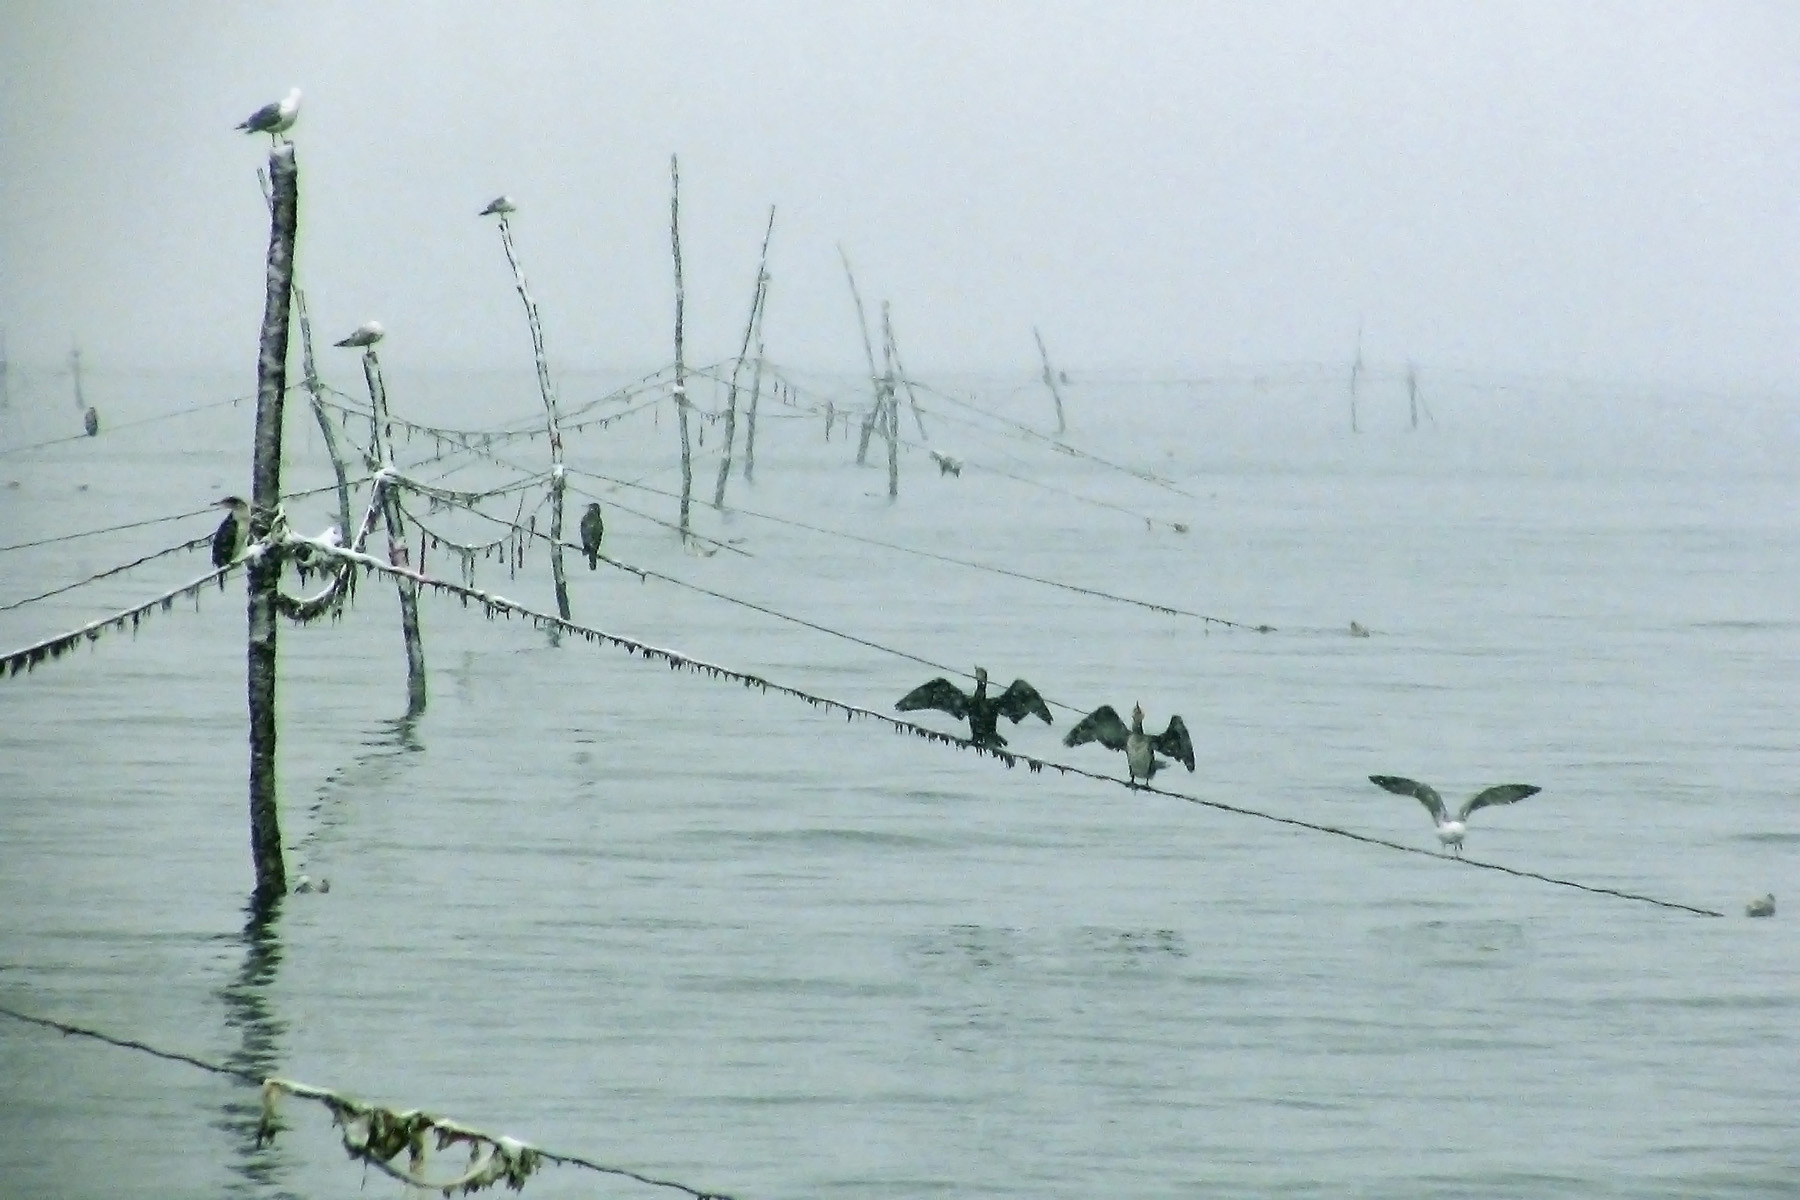 In the Fog, Poles, Water, Ocean, Mist, HQ Photo